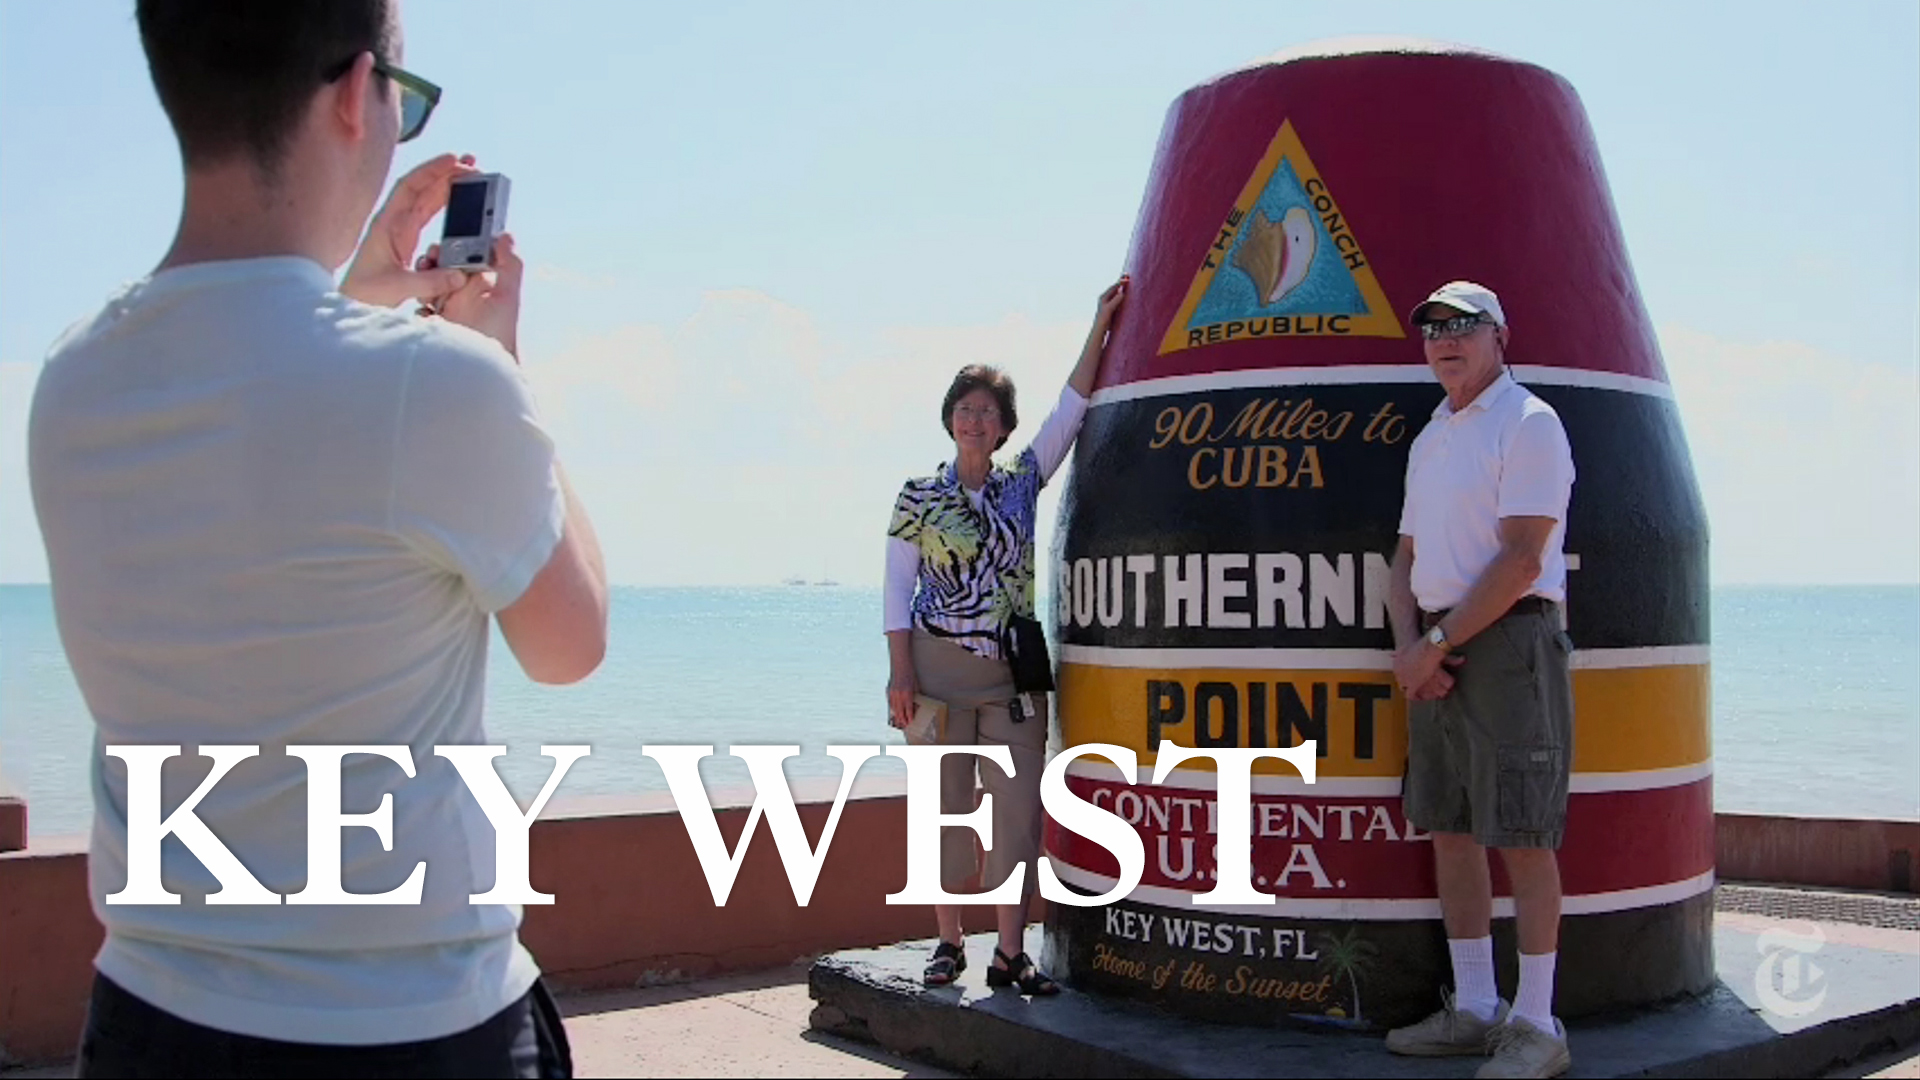 36 HOURS: KEY WEST